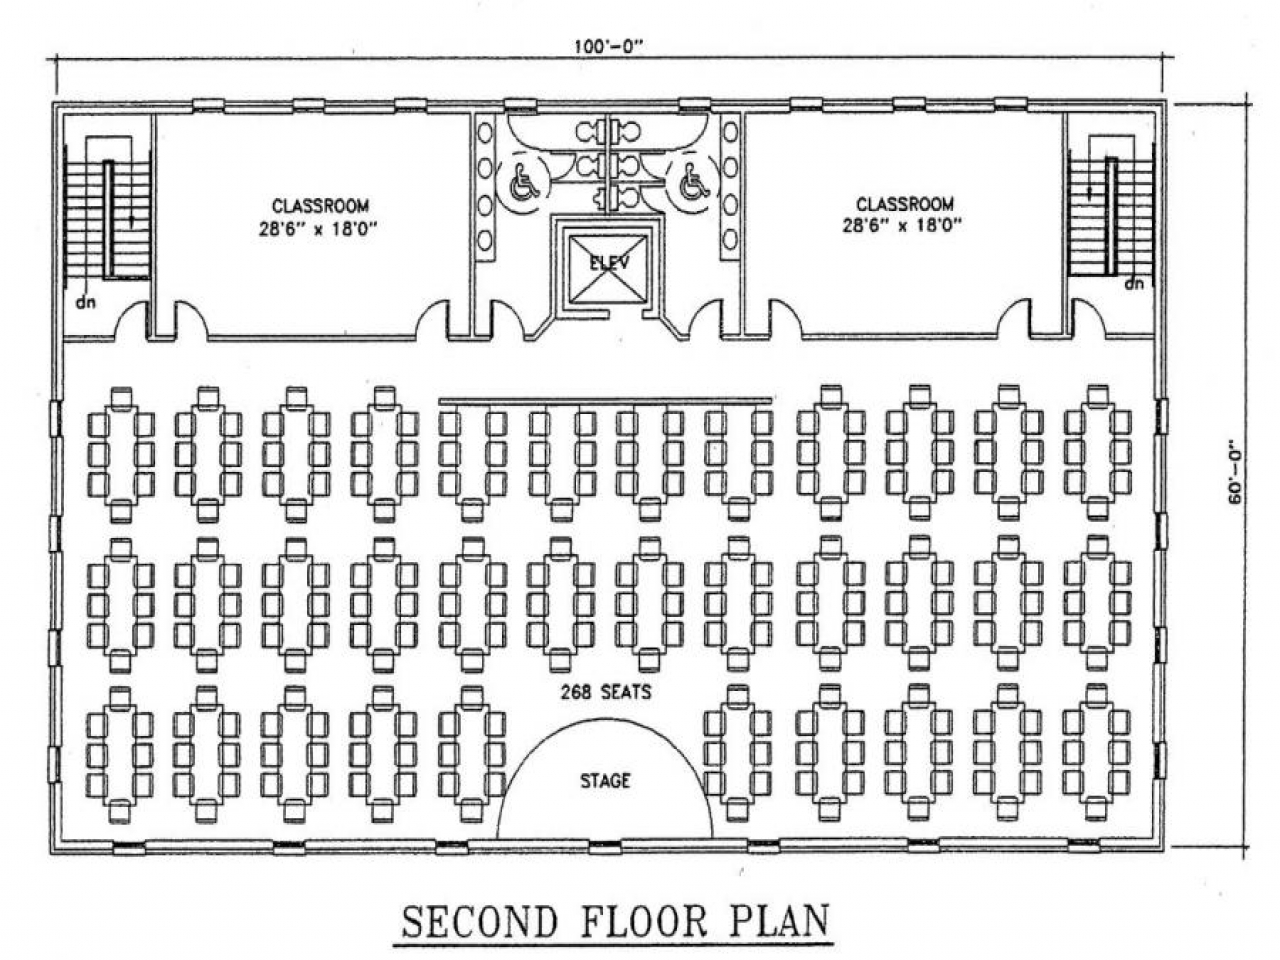 12000 sq ft house plans 12000 square foot homes 12000 sq for 12000 sq ft house plans